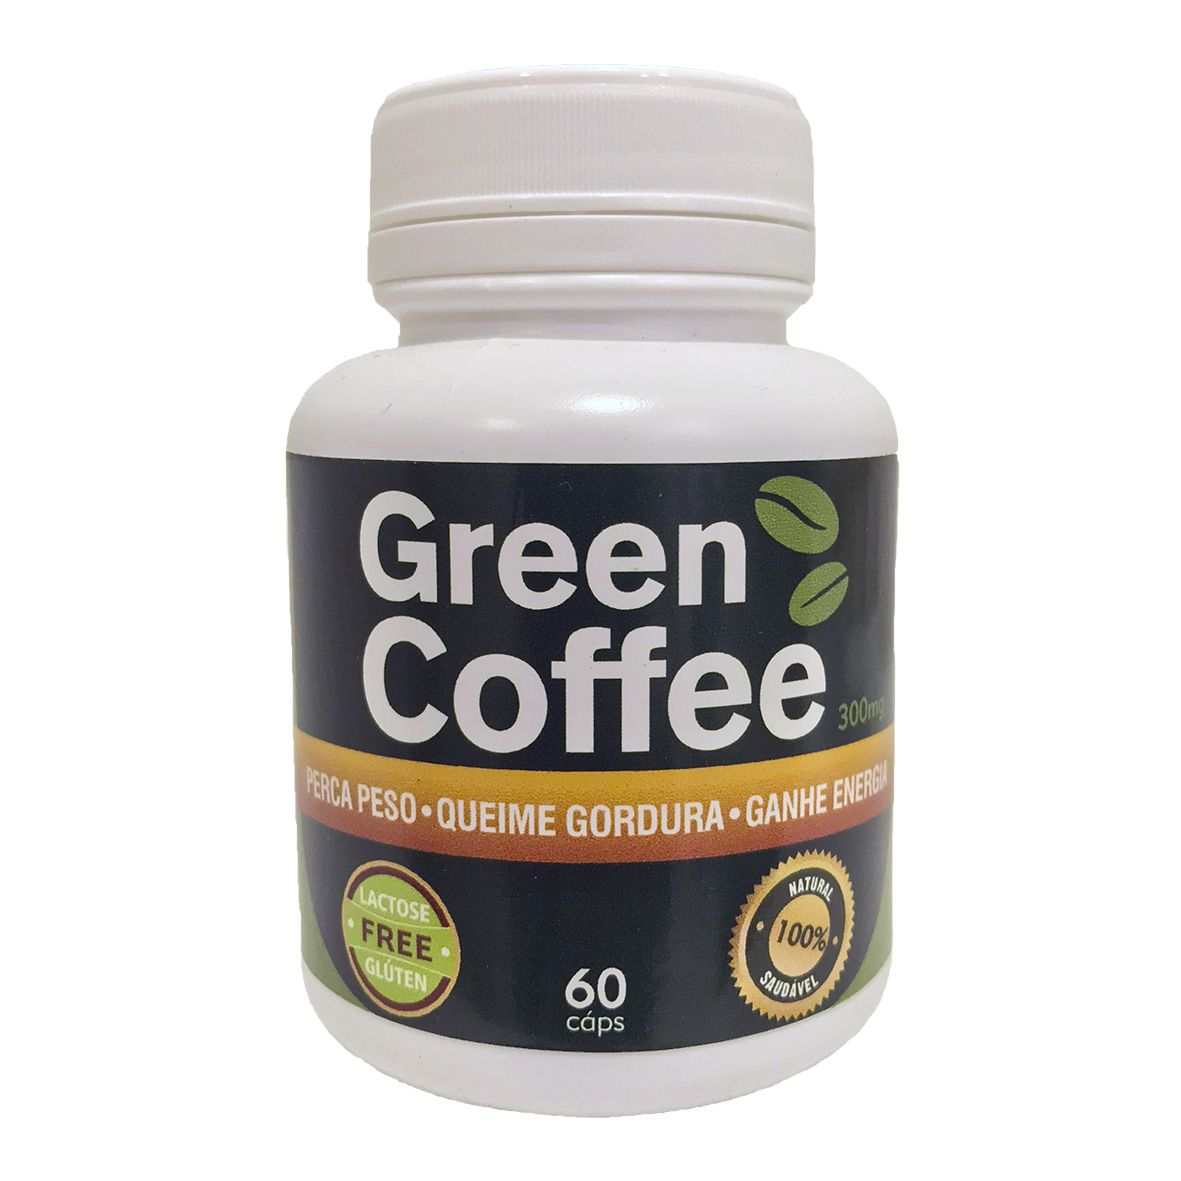 Café Verde (Green Coffee) - 60 cápsulas